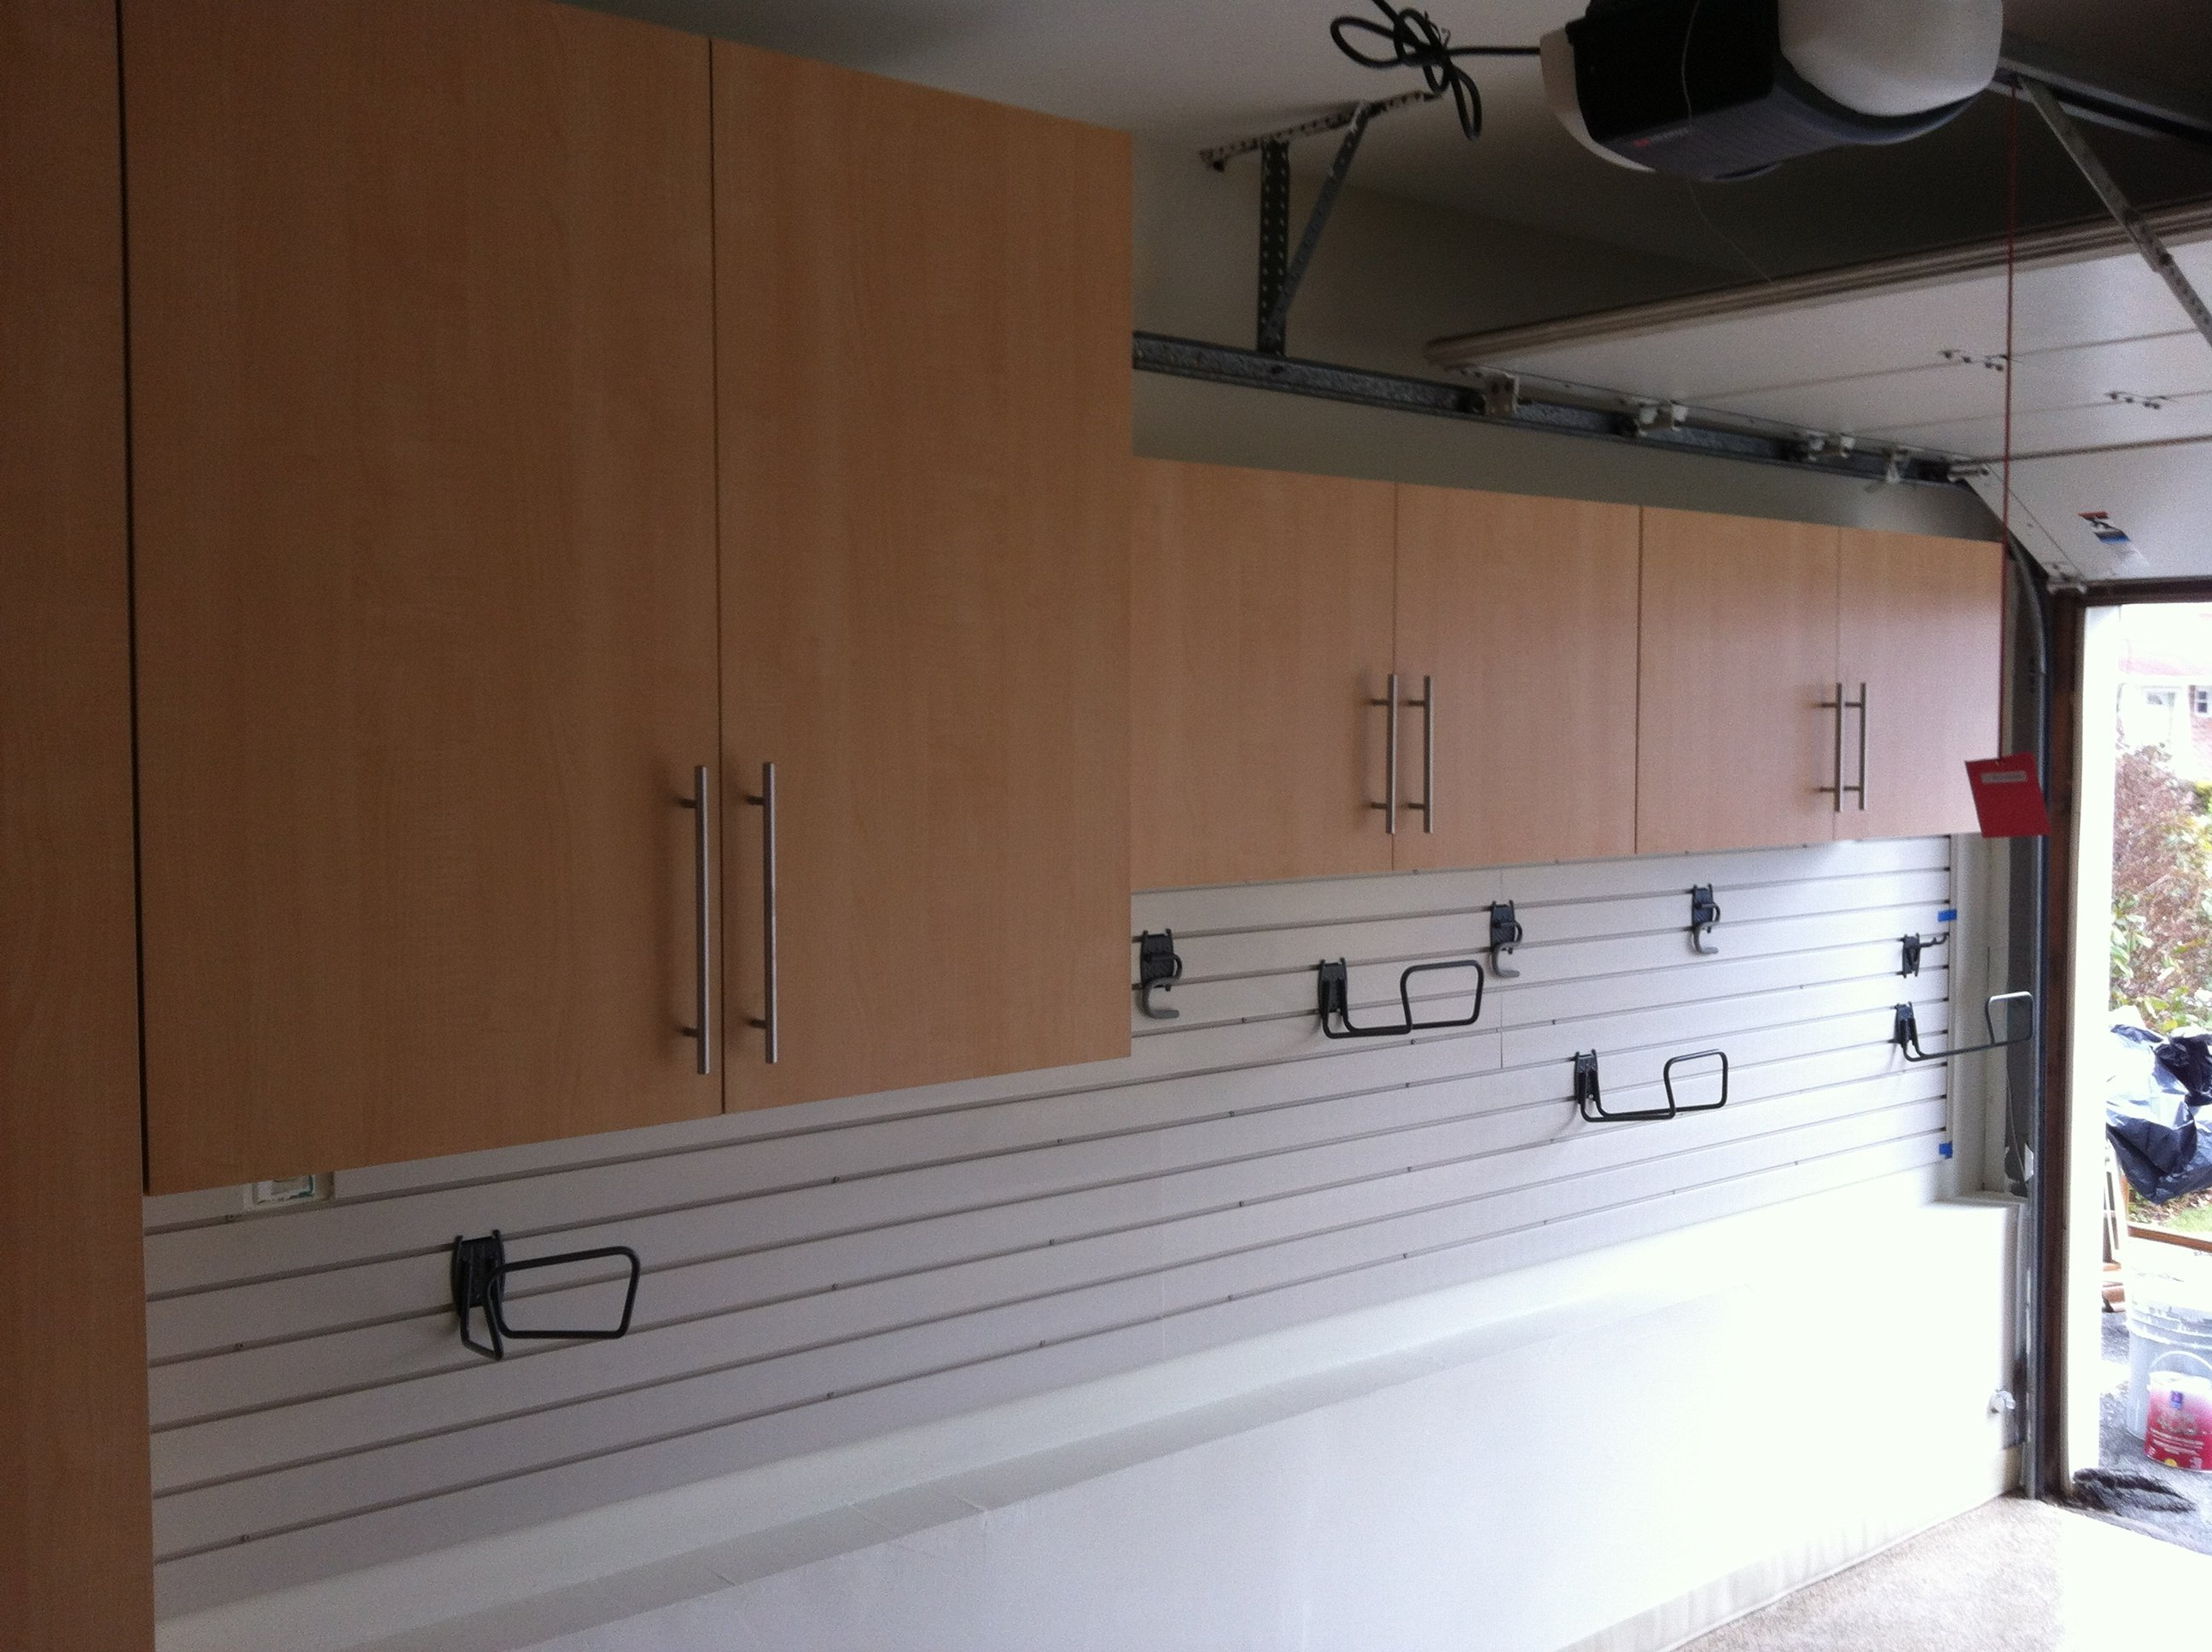 Side Wall Cabinets & SlatWall